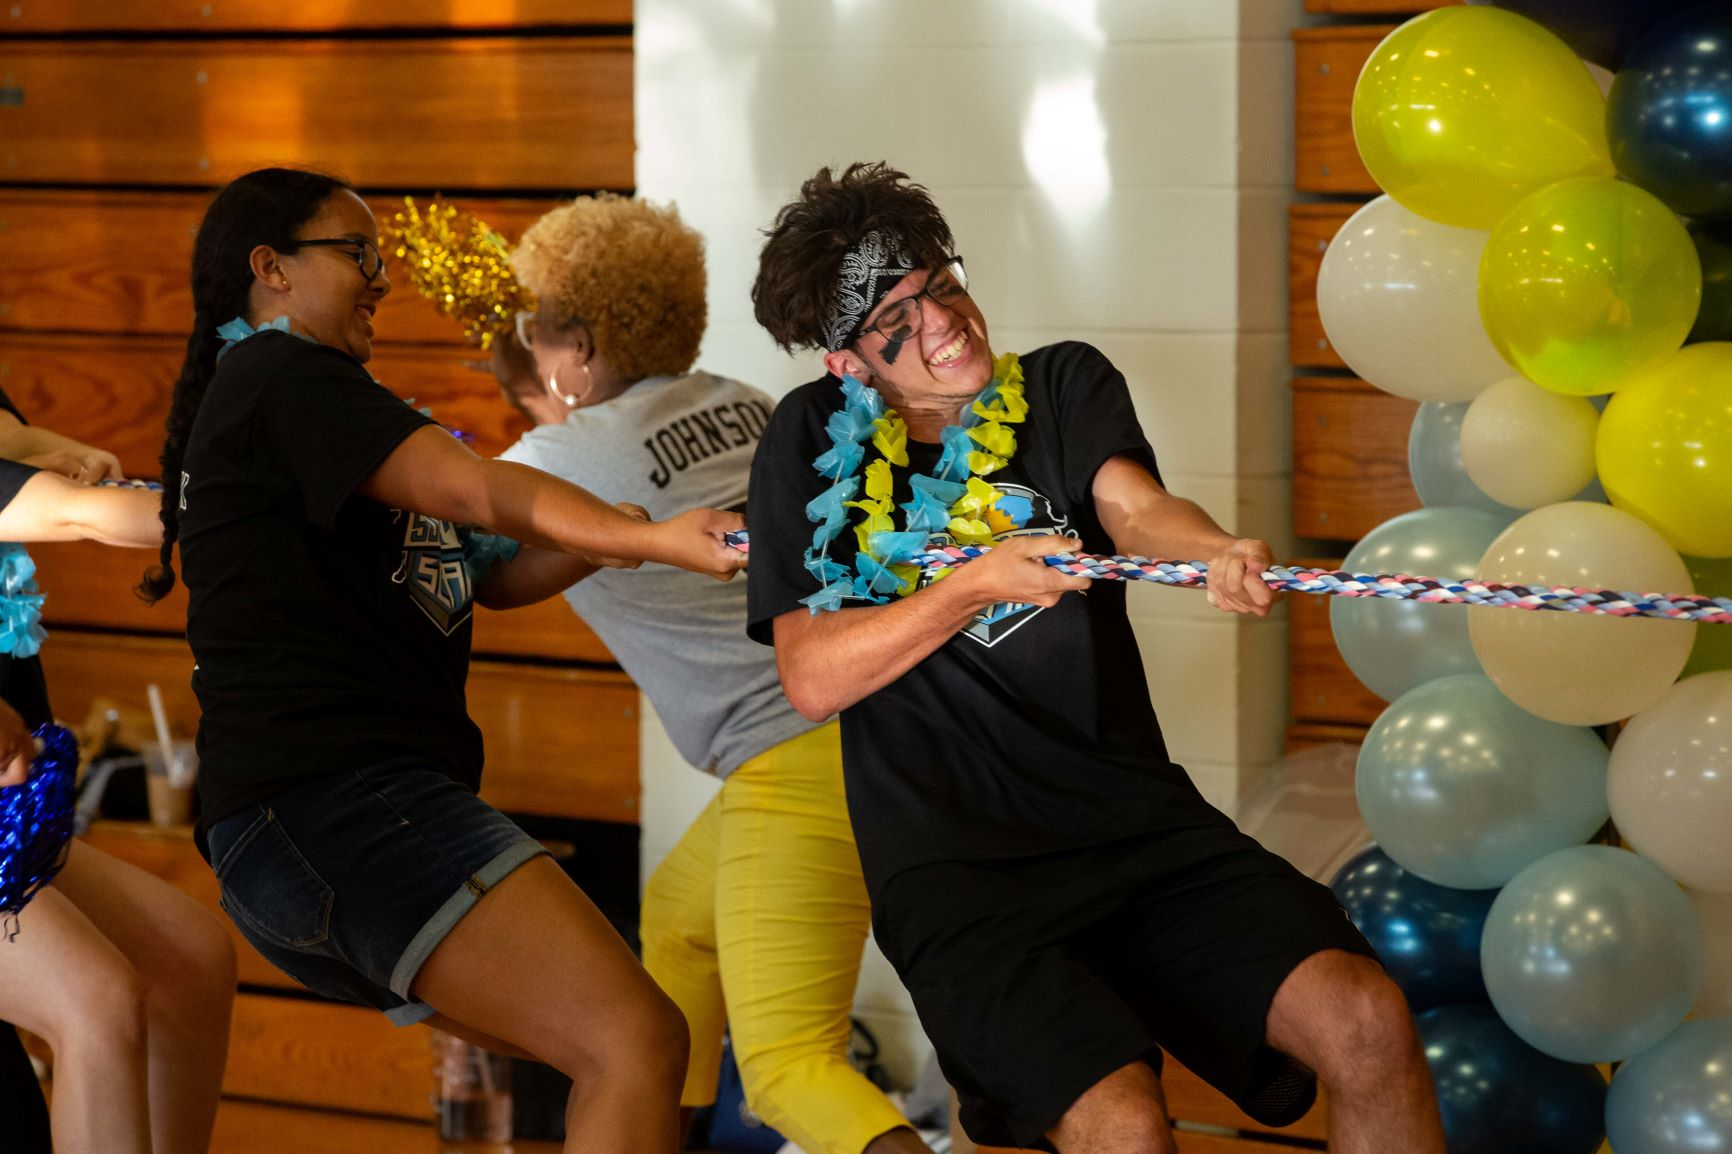 New students compete in tug of war at the Summer Slam event during Stockton University's overnight orientation experience called Nest Fest.